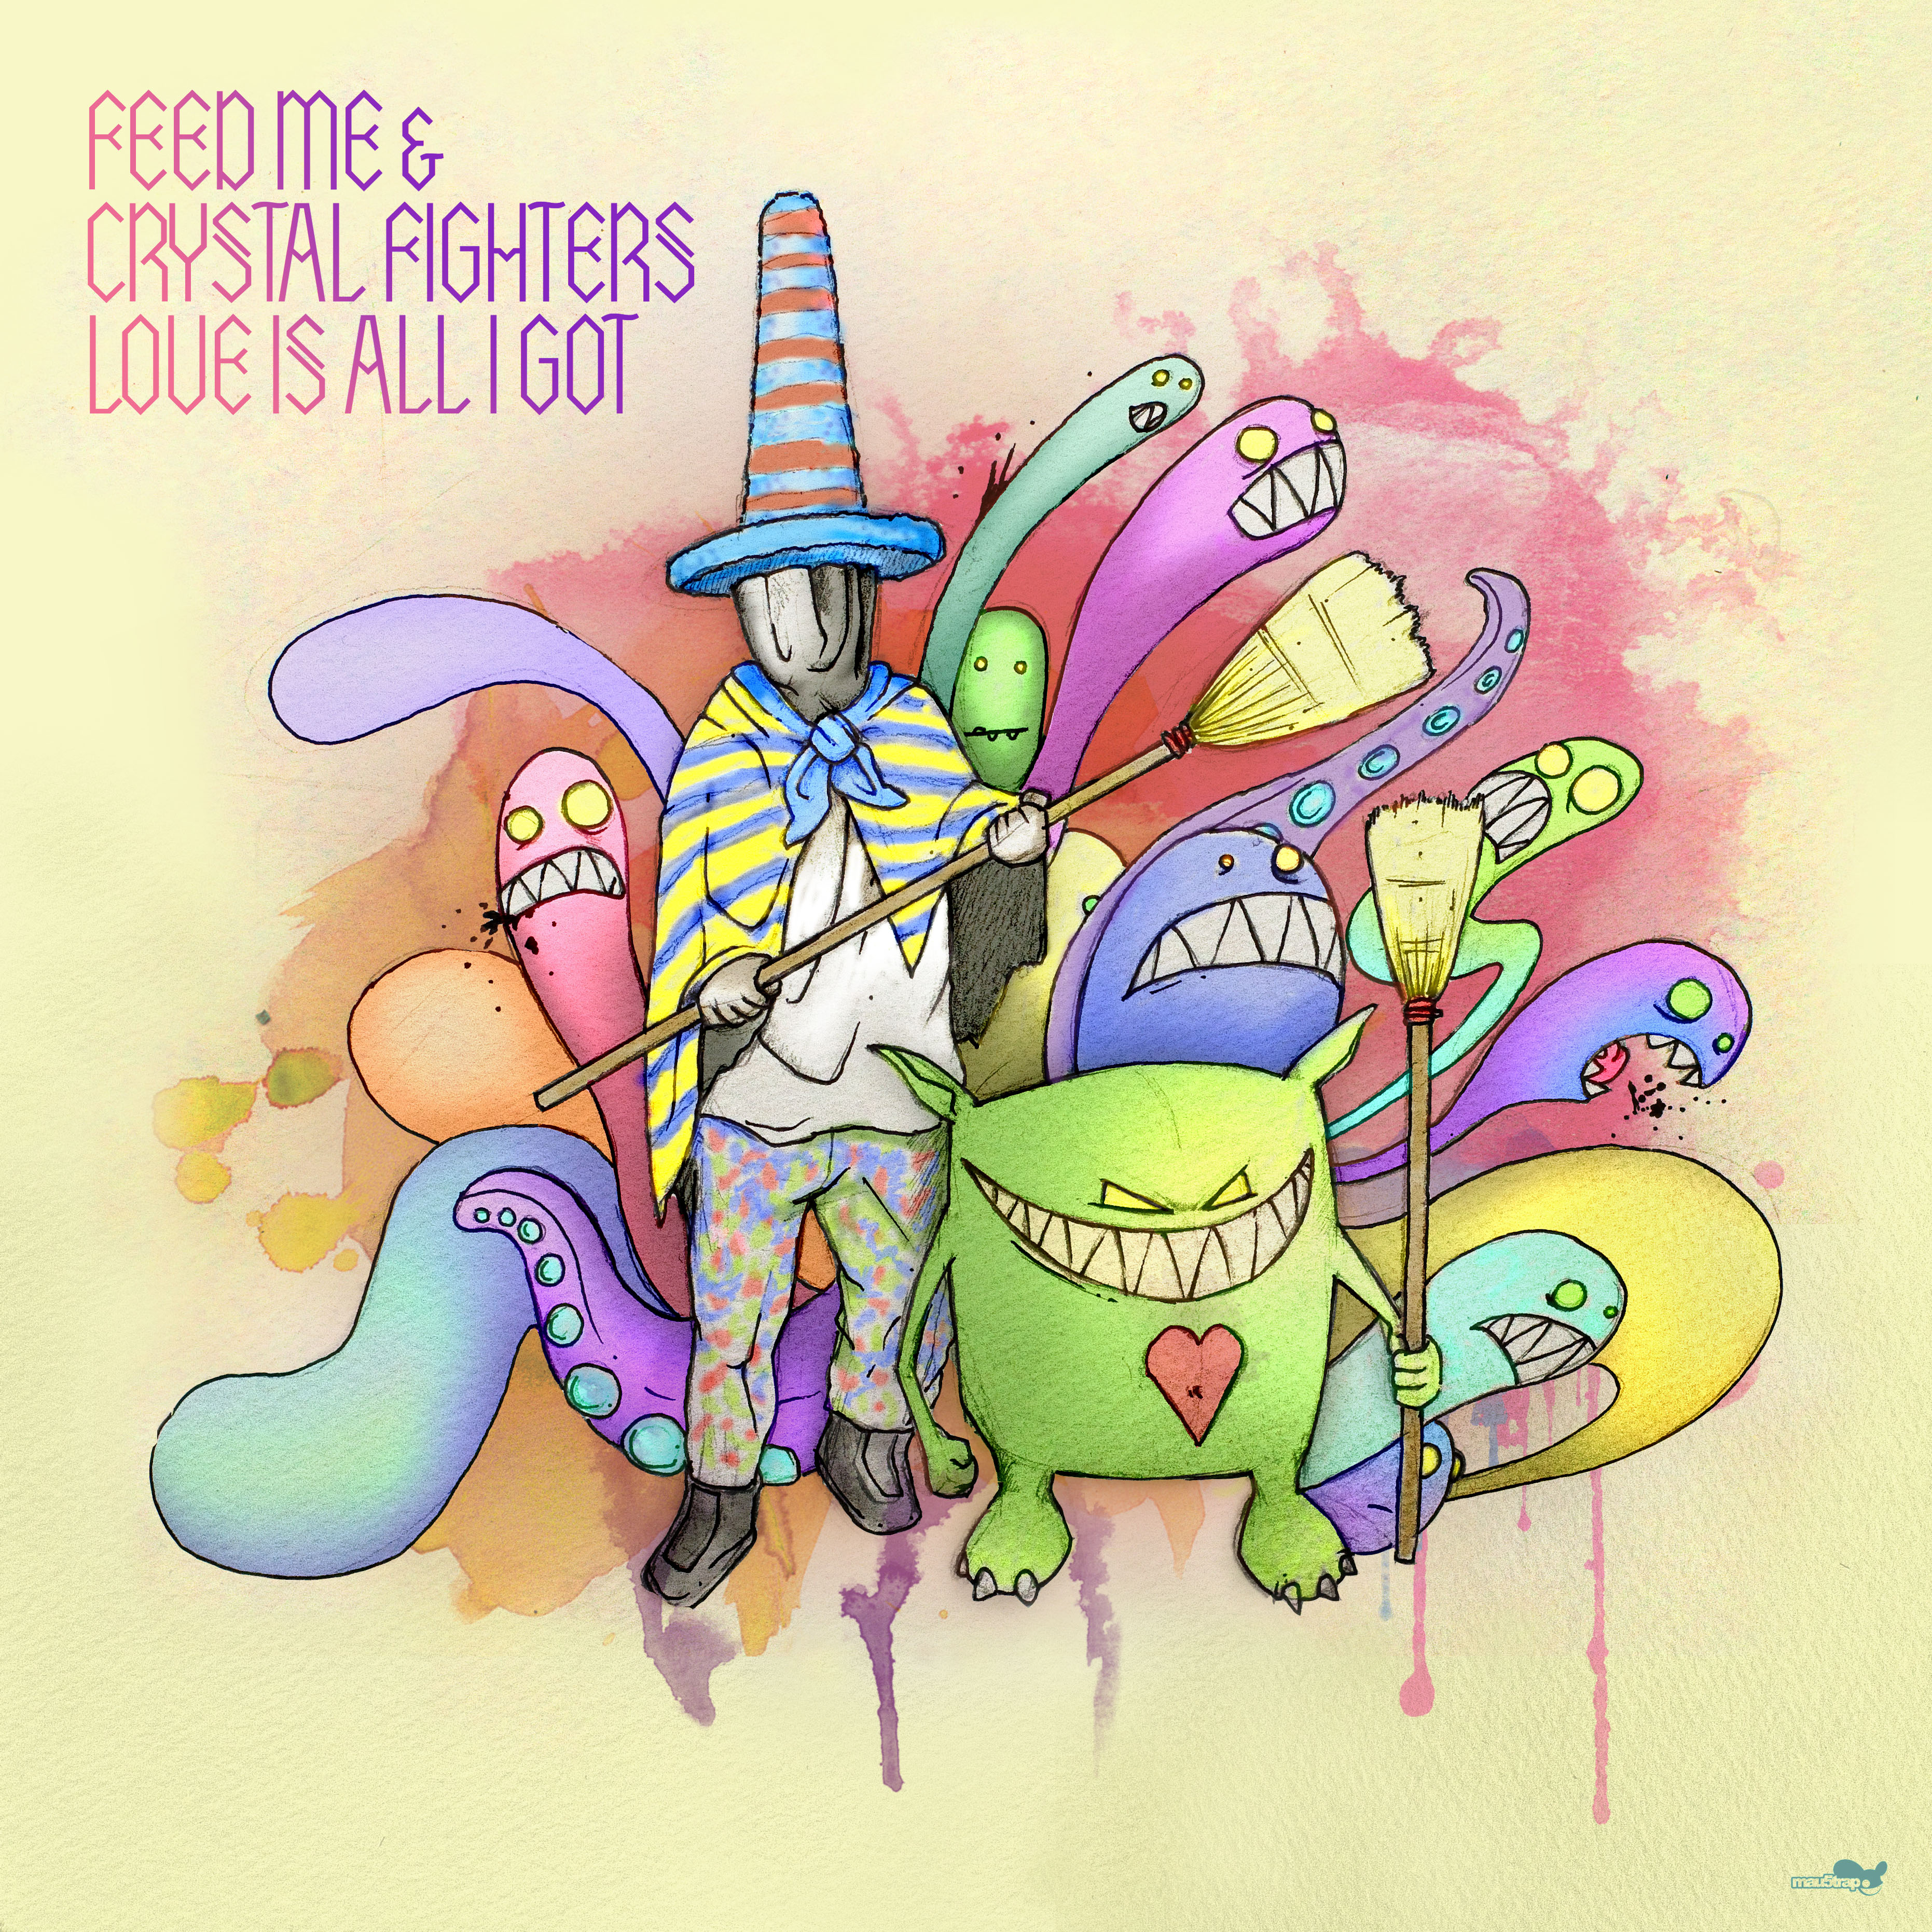 Dubstep trifft auf englisch-spanische Electronic-Band: FEED ME & Crystal Fighters